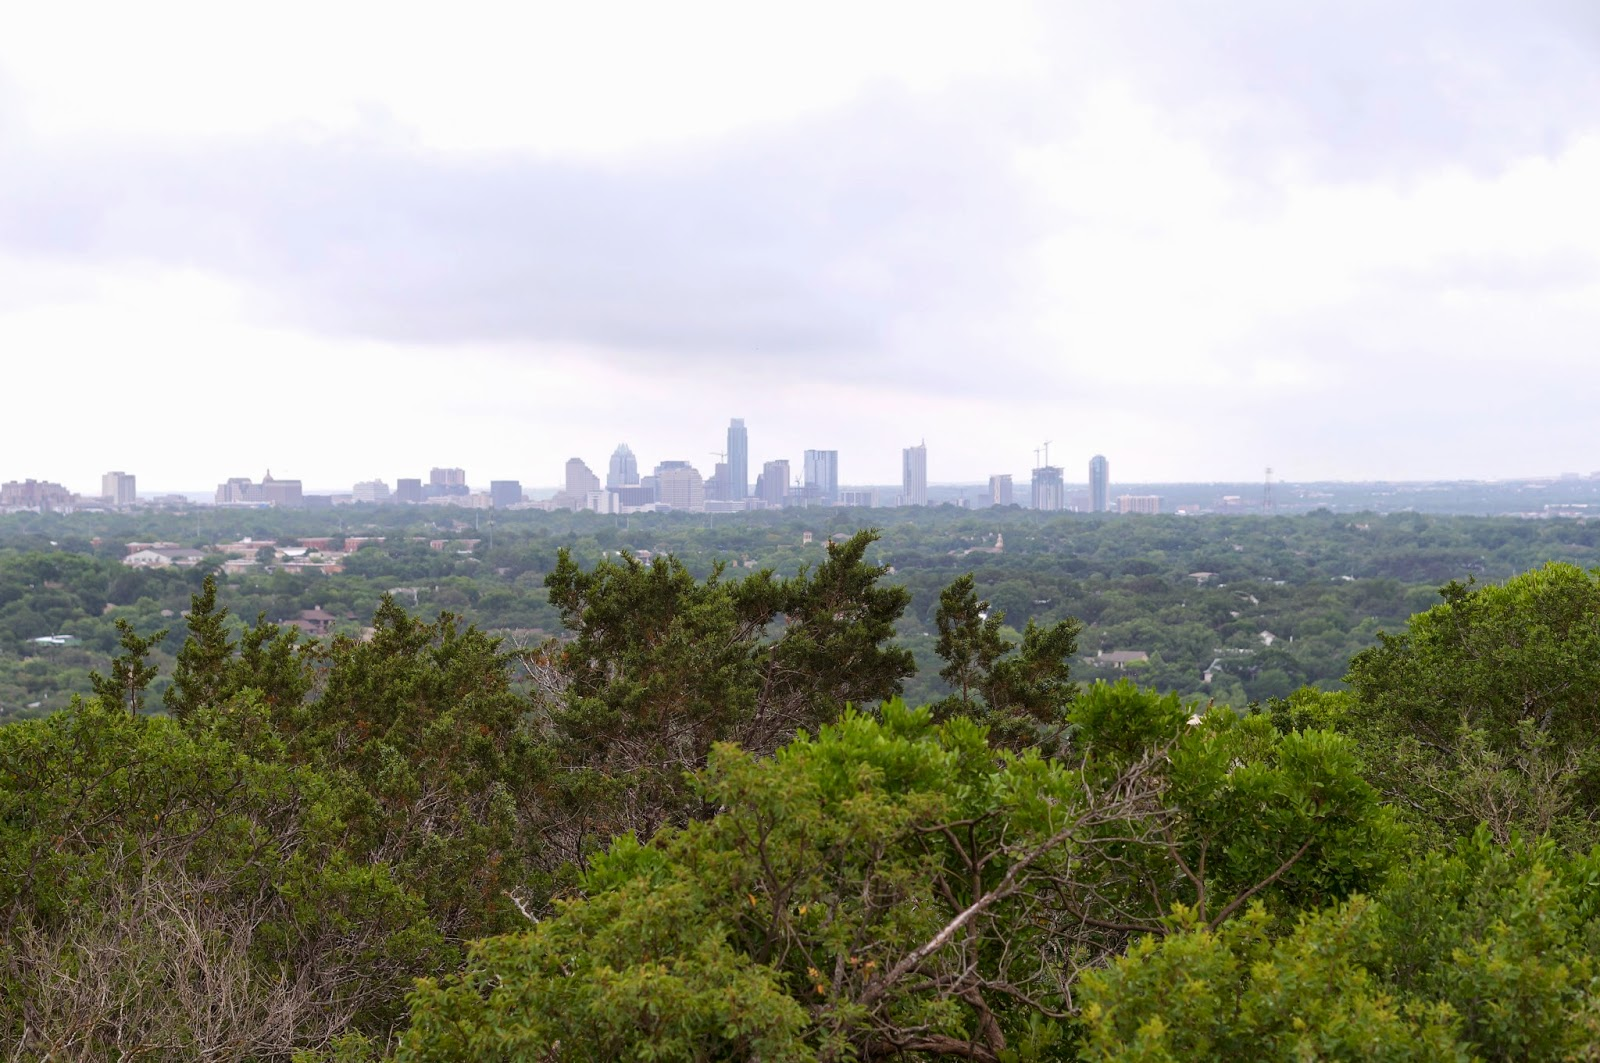 MT BONNELL, AUSTIN TEXAS, 100 STEPS, DOWNTOWN AUSTIN